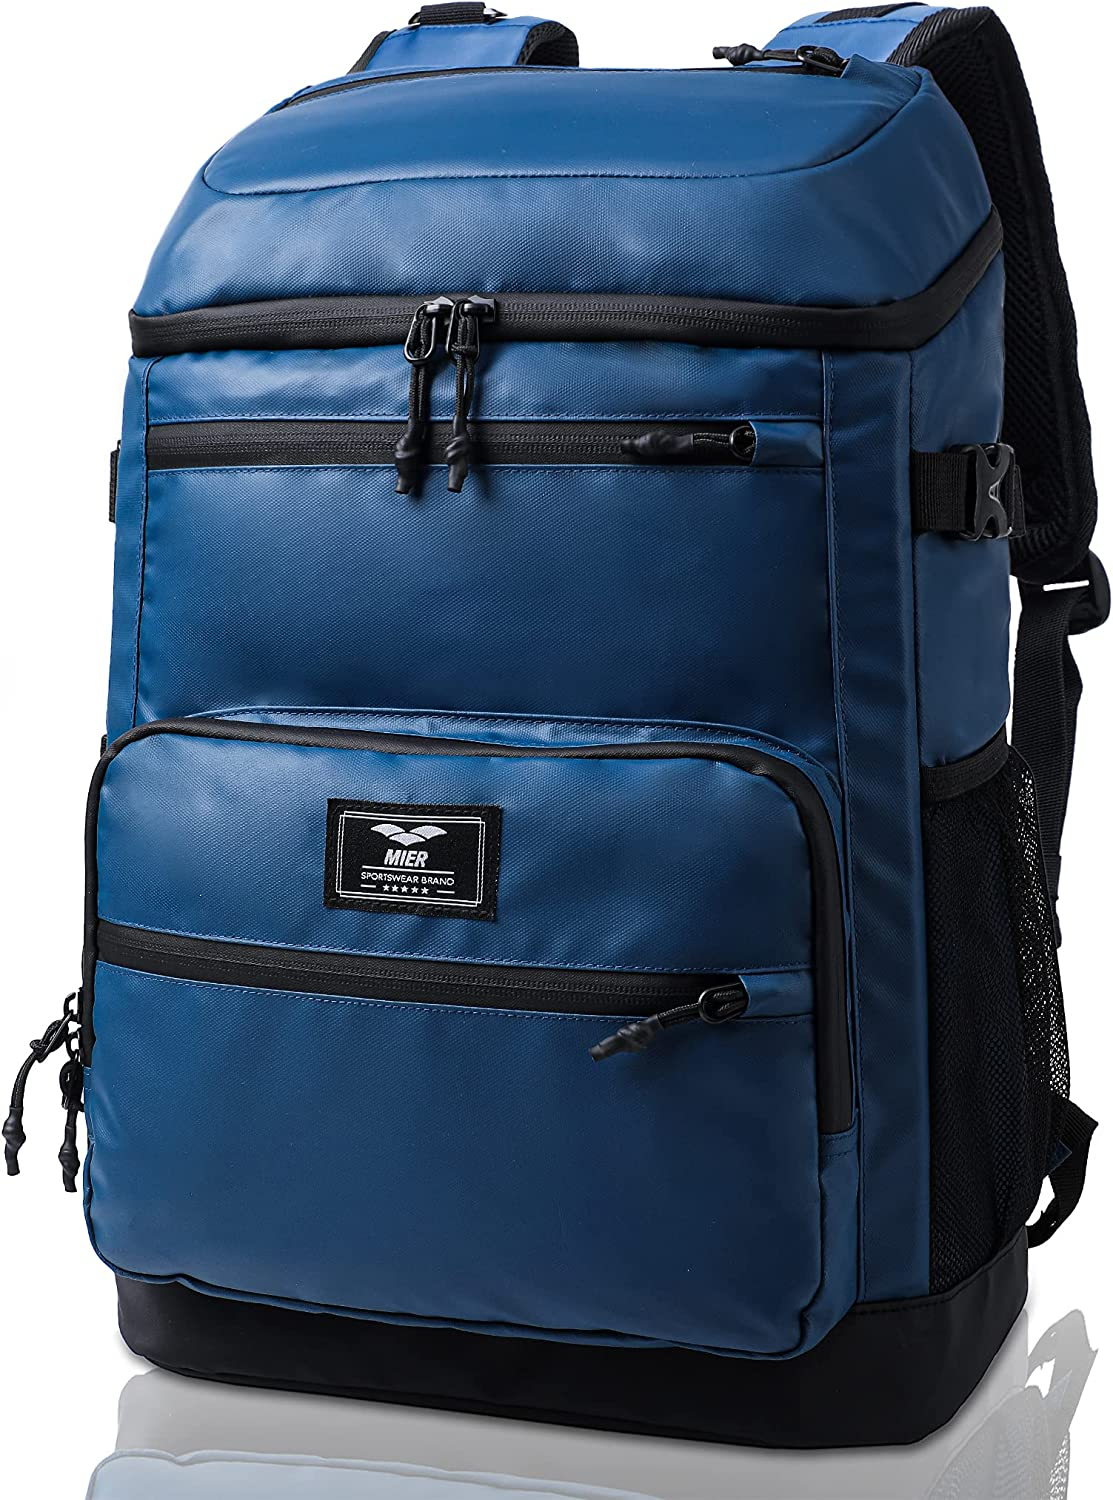 Superior Bombing free shipping MIER Backpack Cooler Waterproof Leakpr Insulated